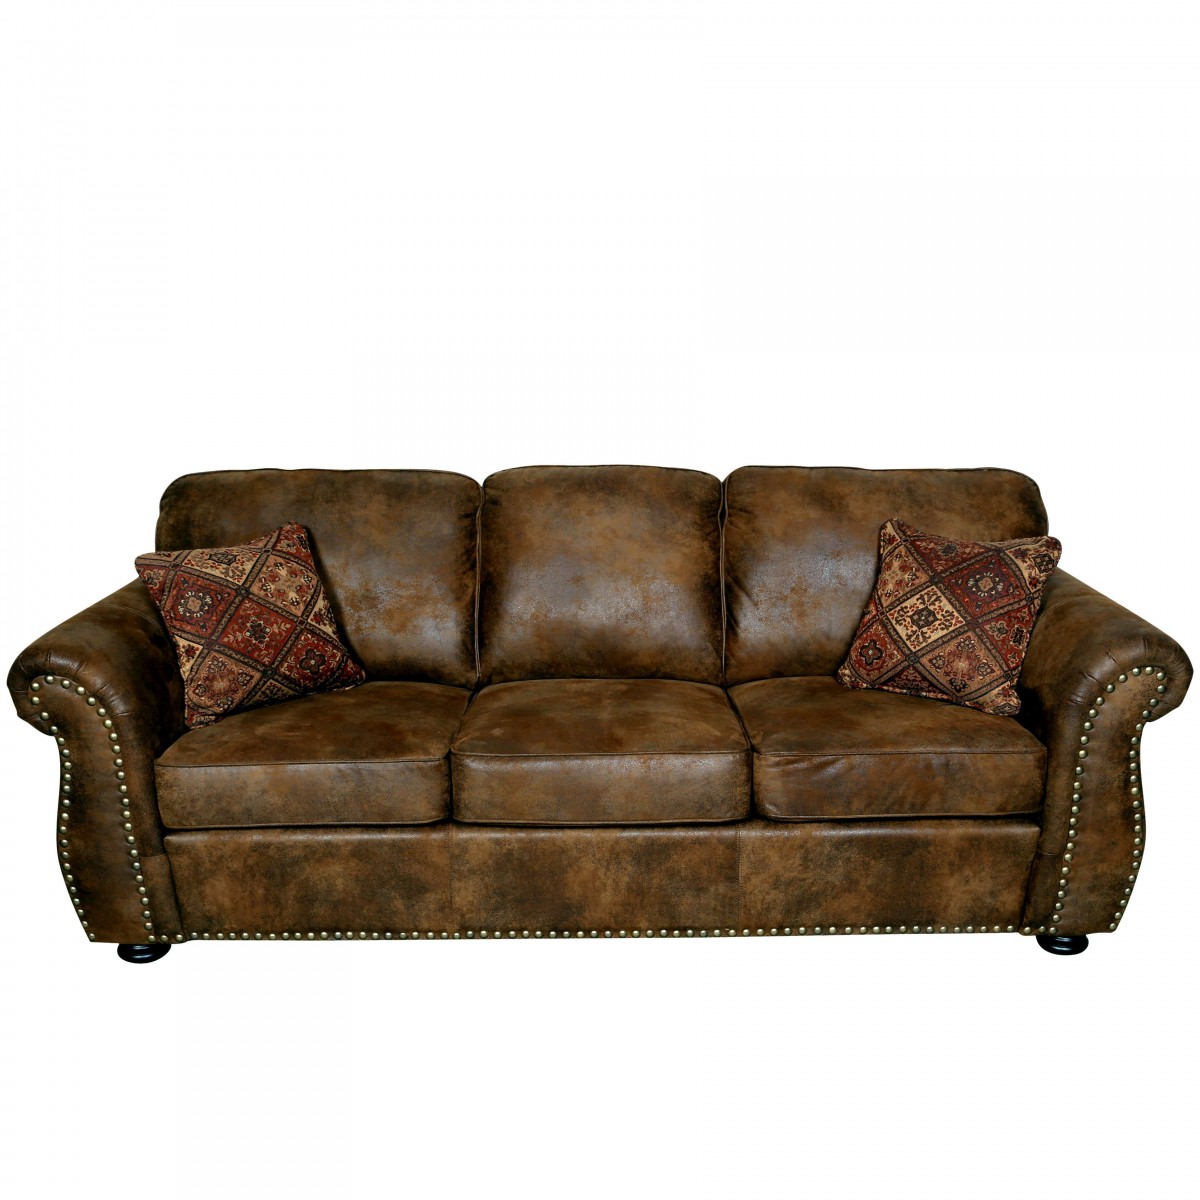 Cheap Faux Leather Sofa: Porter Elk River Faux Leather Microfiber Sofa With Roll